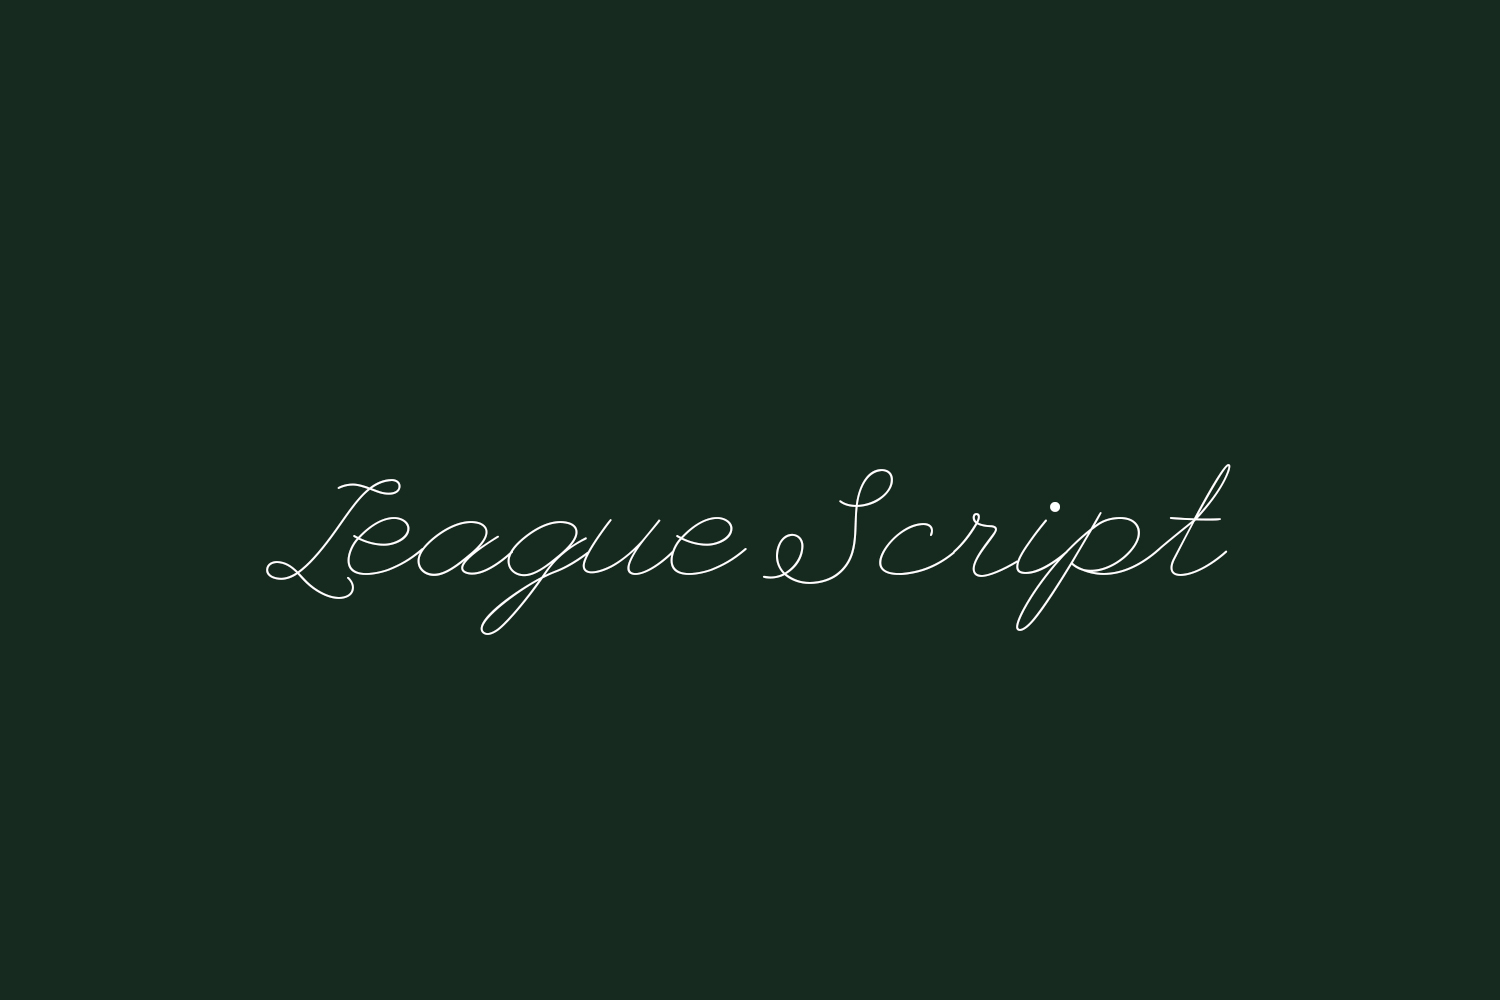 League Script